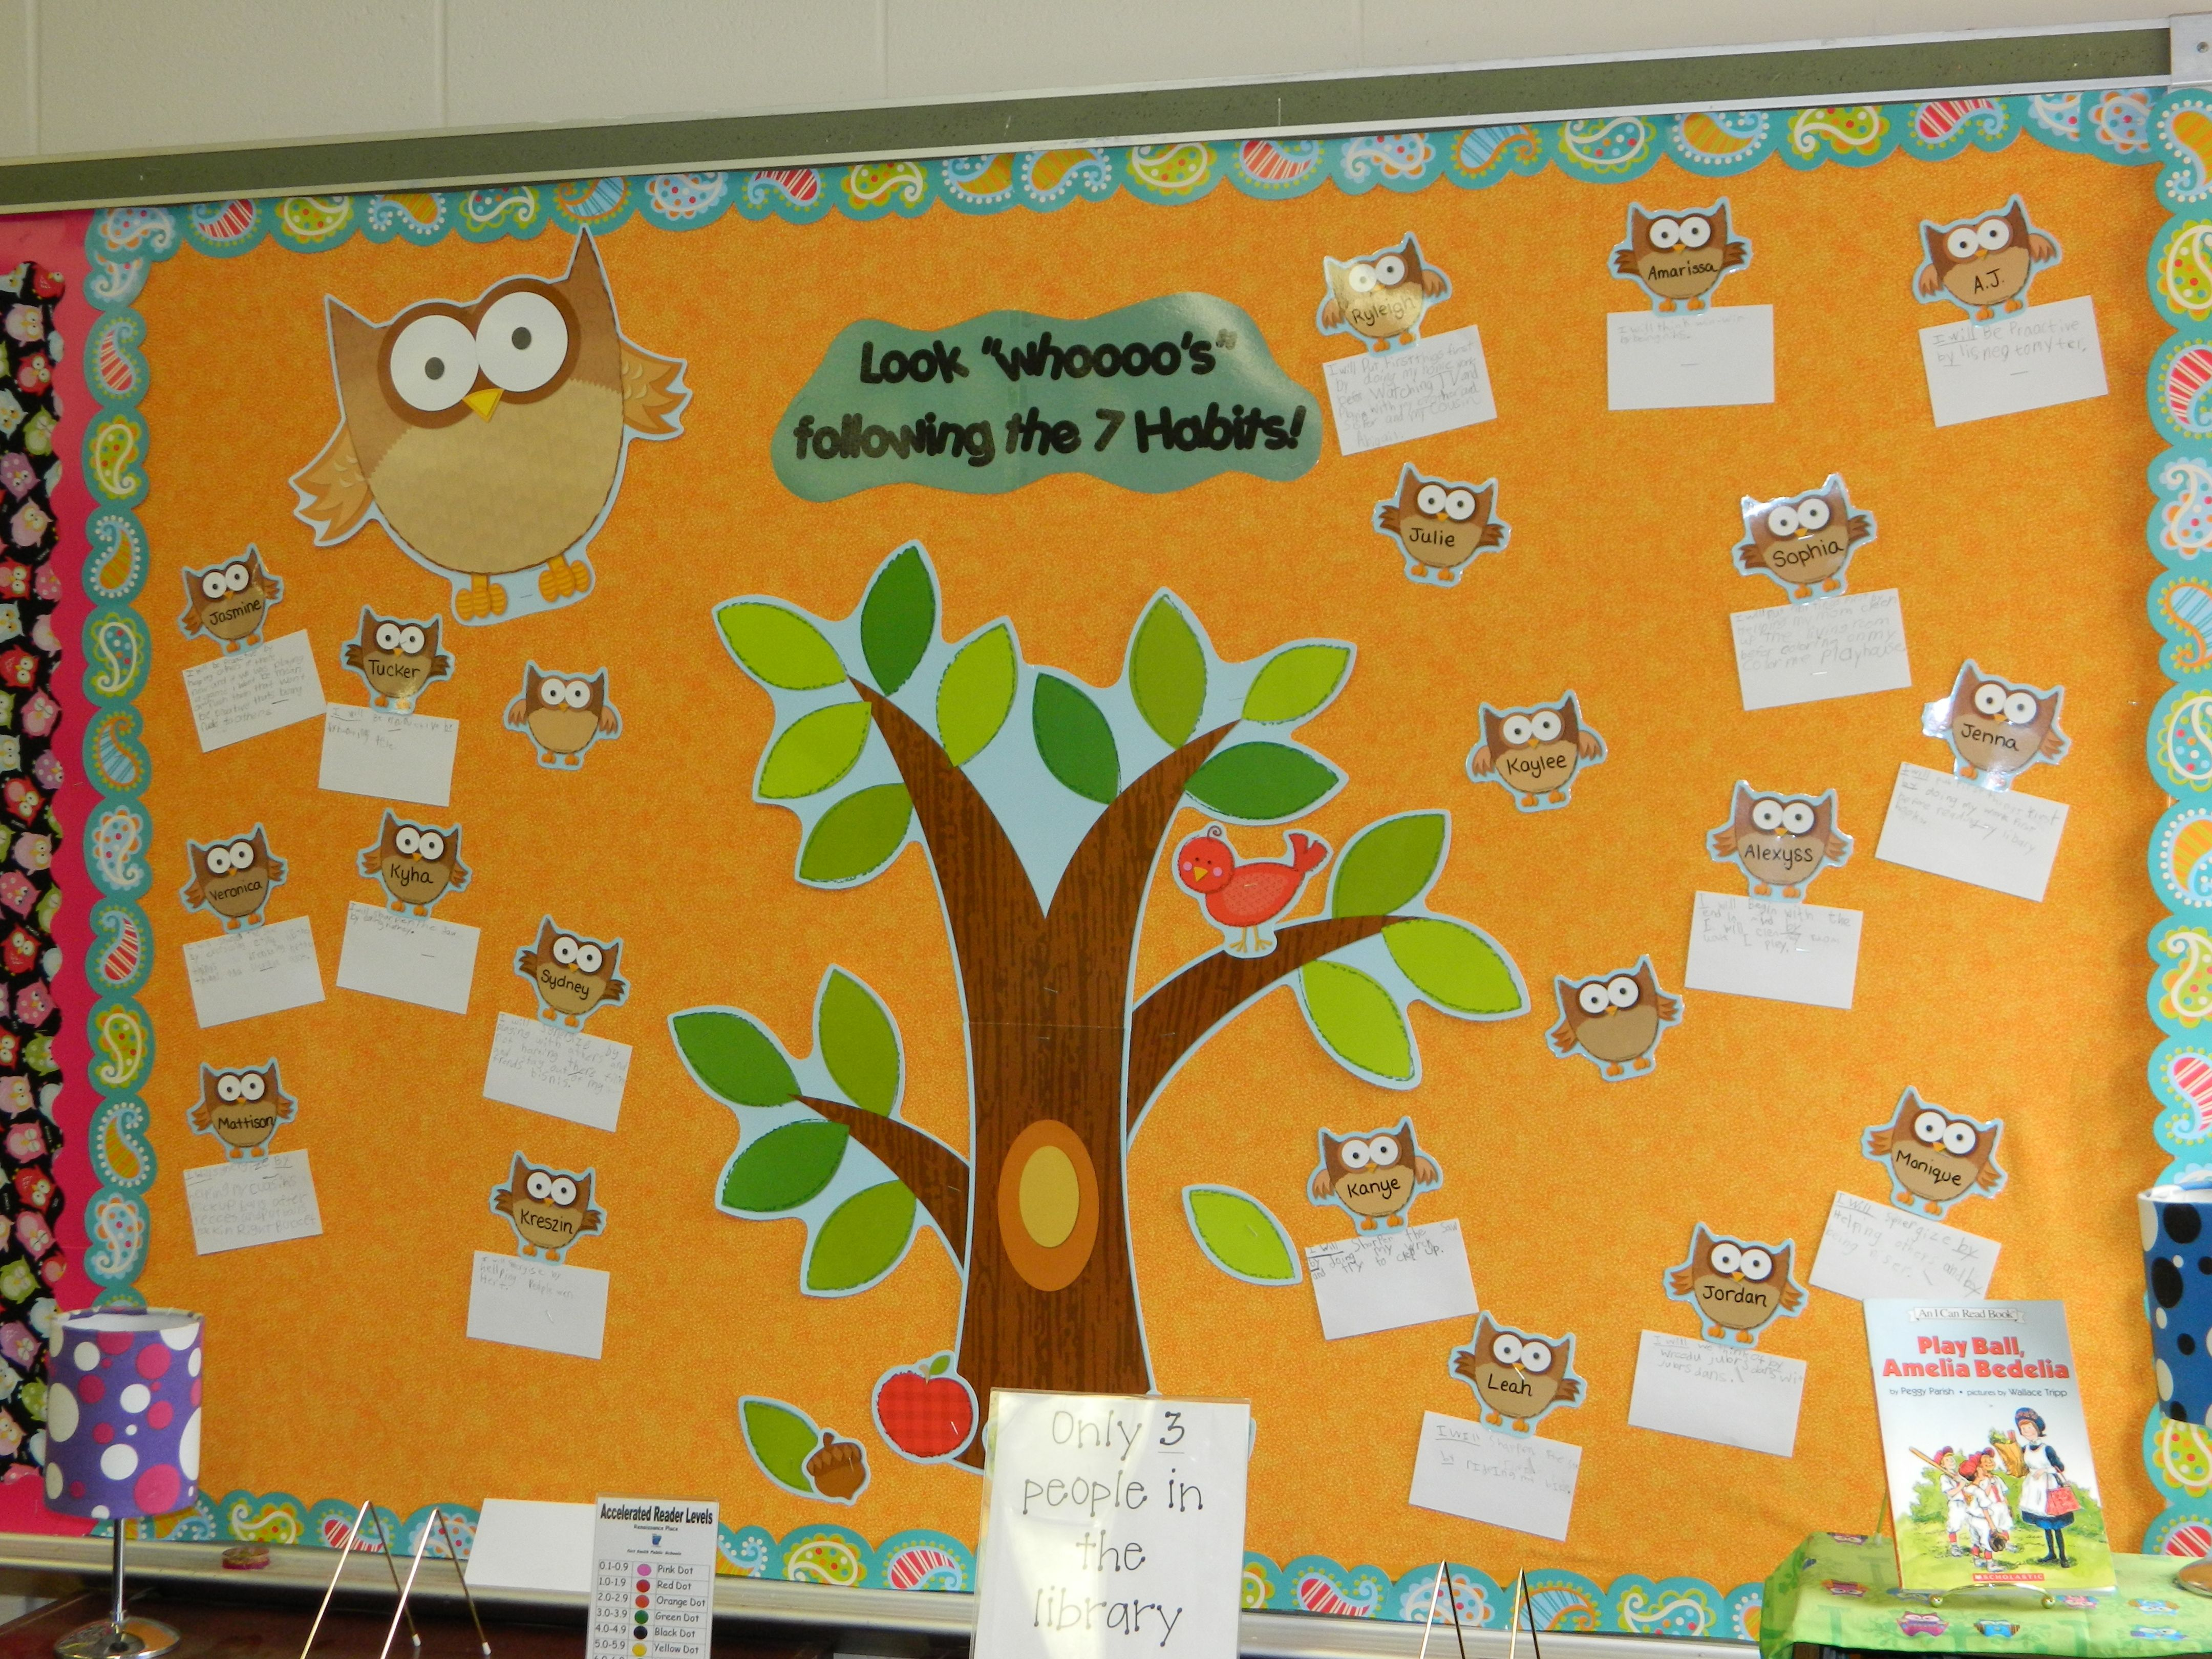 7 Habits Display Above The Class Library Each Student